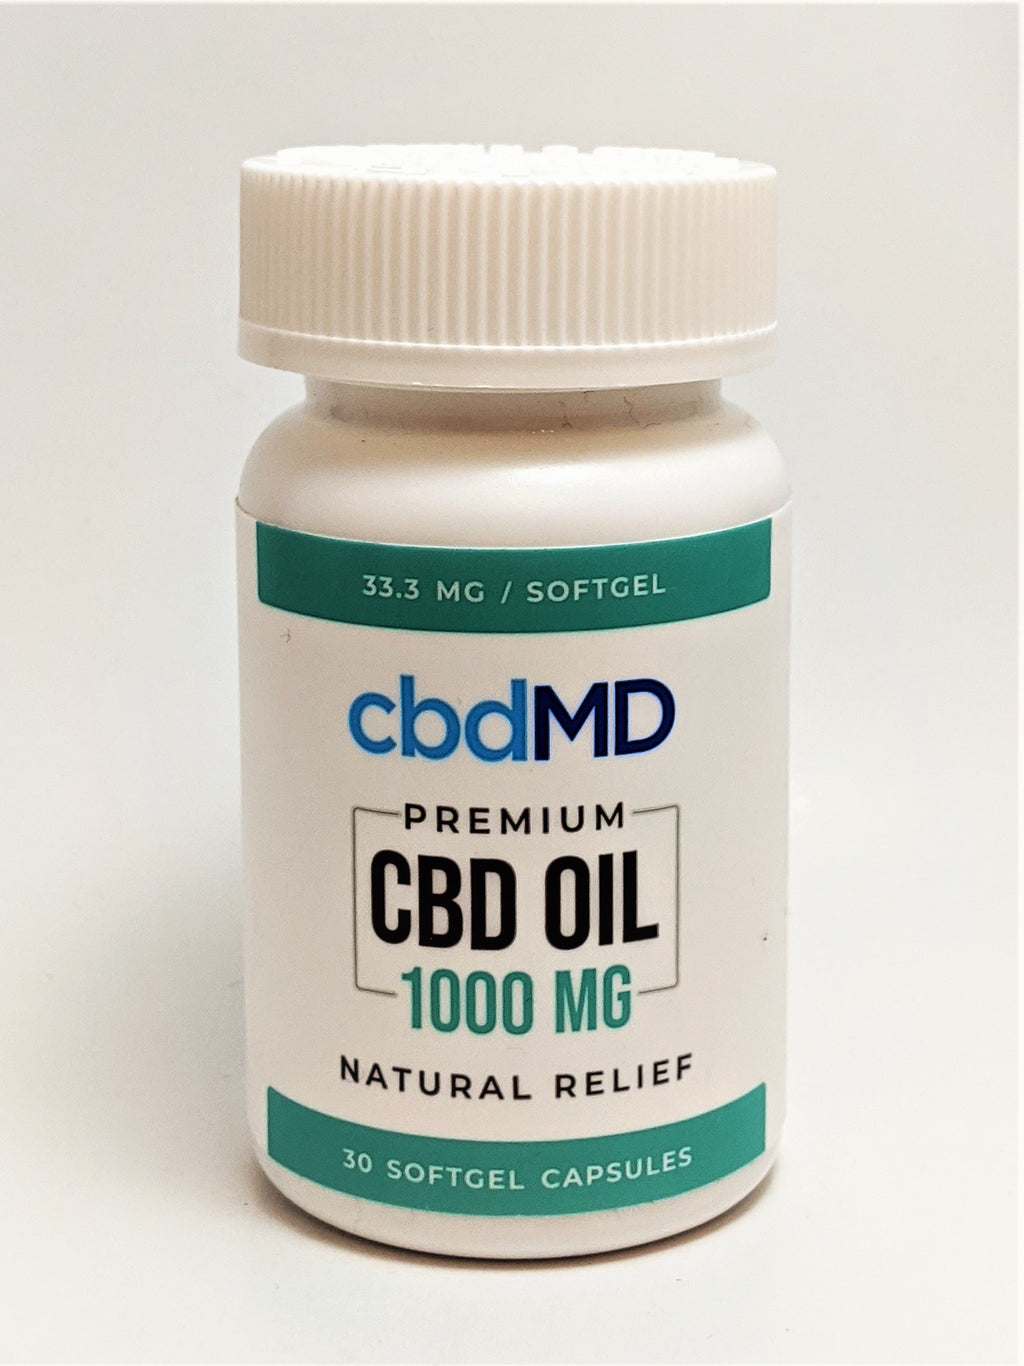 cbdMD 33.3 mg SoftGel Capsules, 30 count (1000 mg CBD) - CBD Central